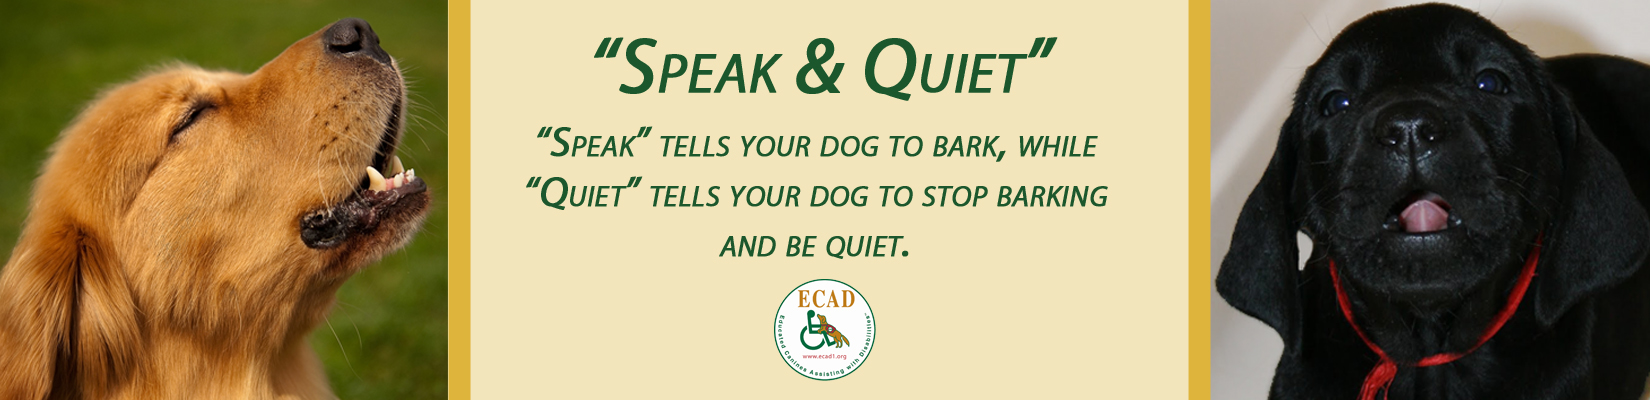 speak-banner